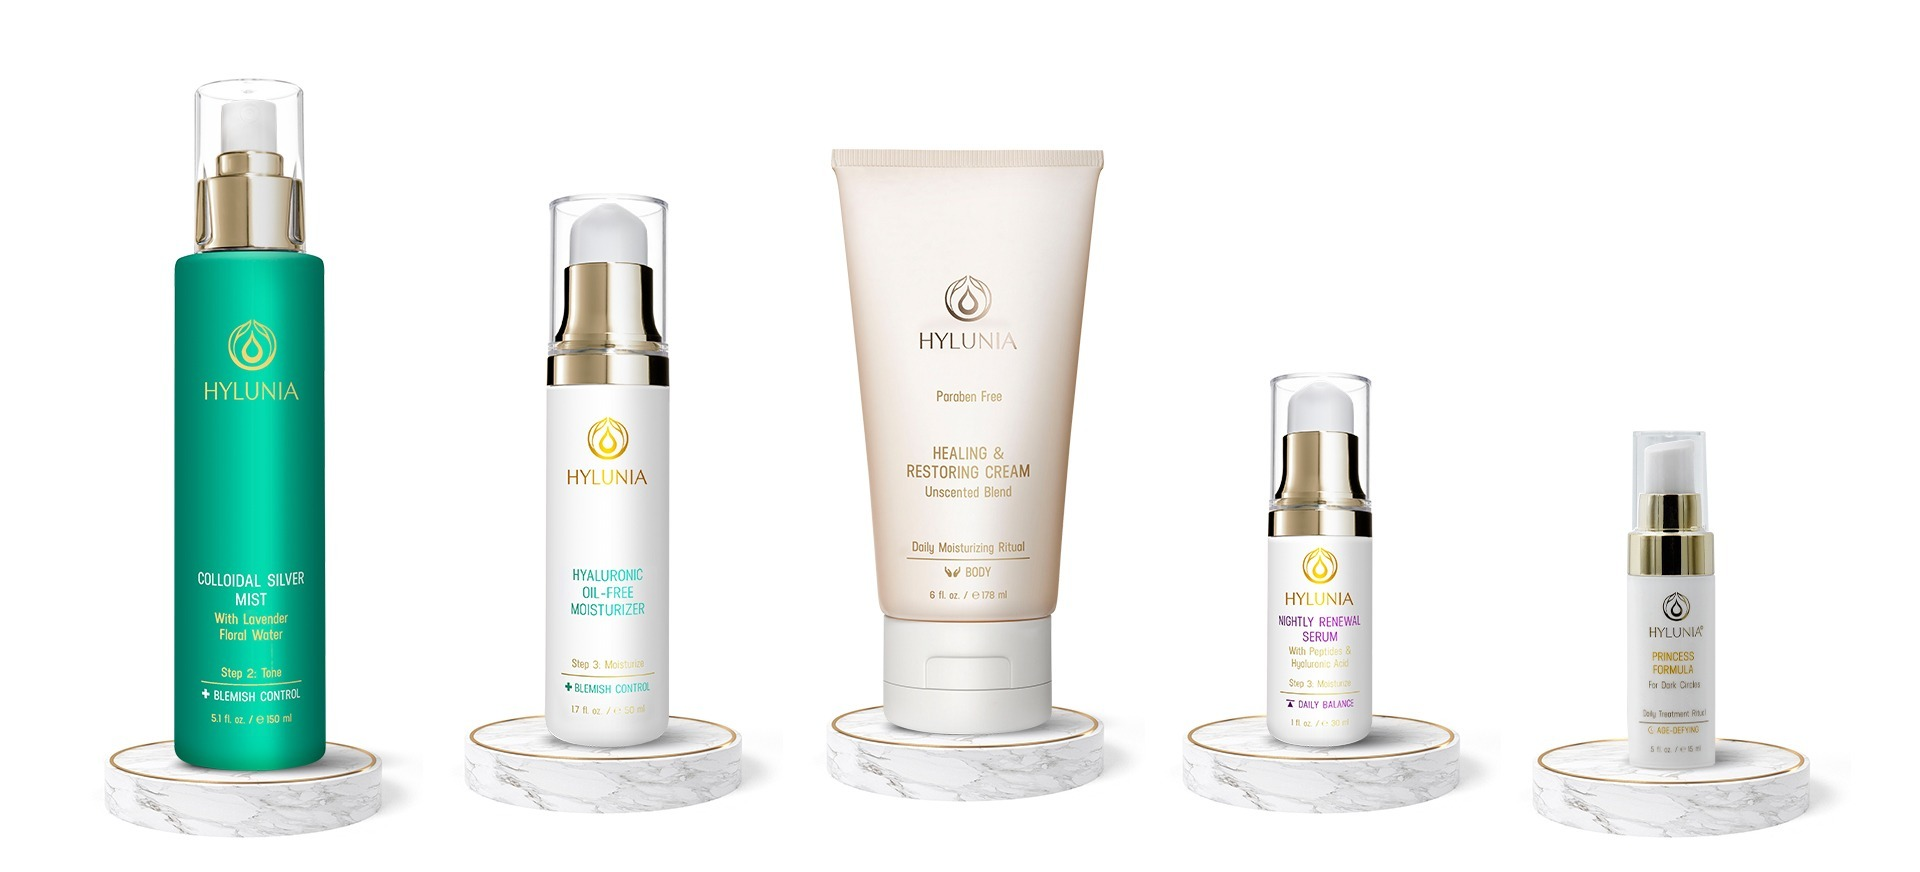 Five most loved Hylunia products